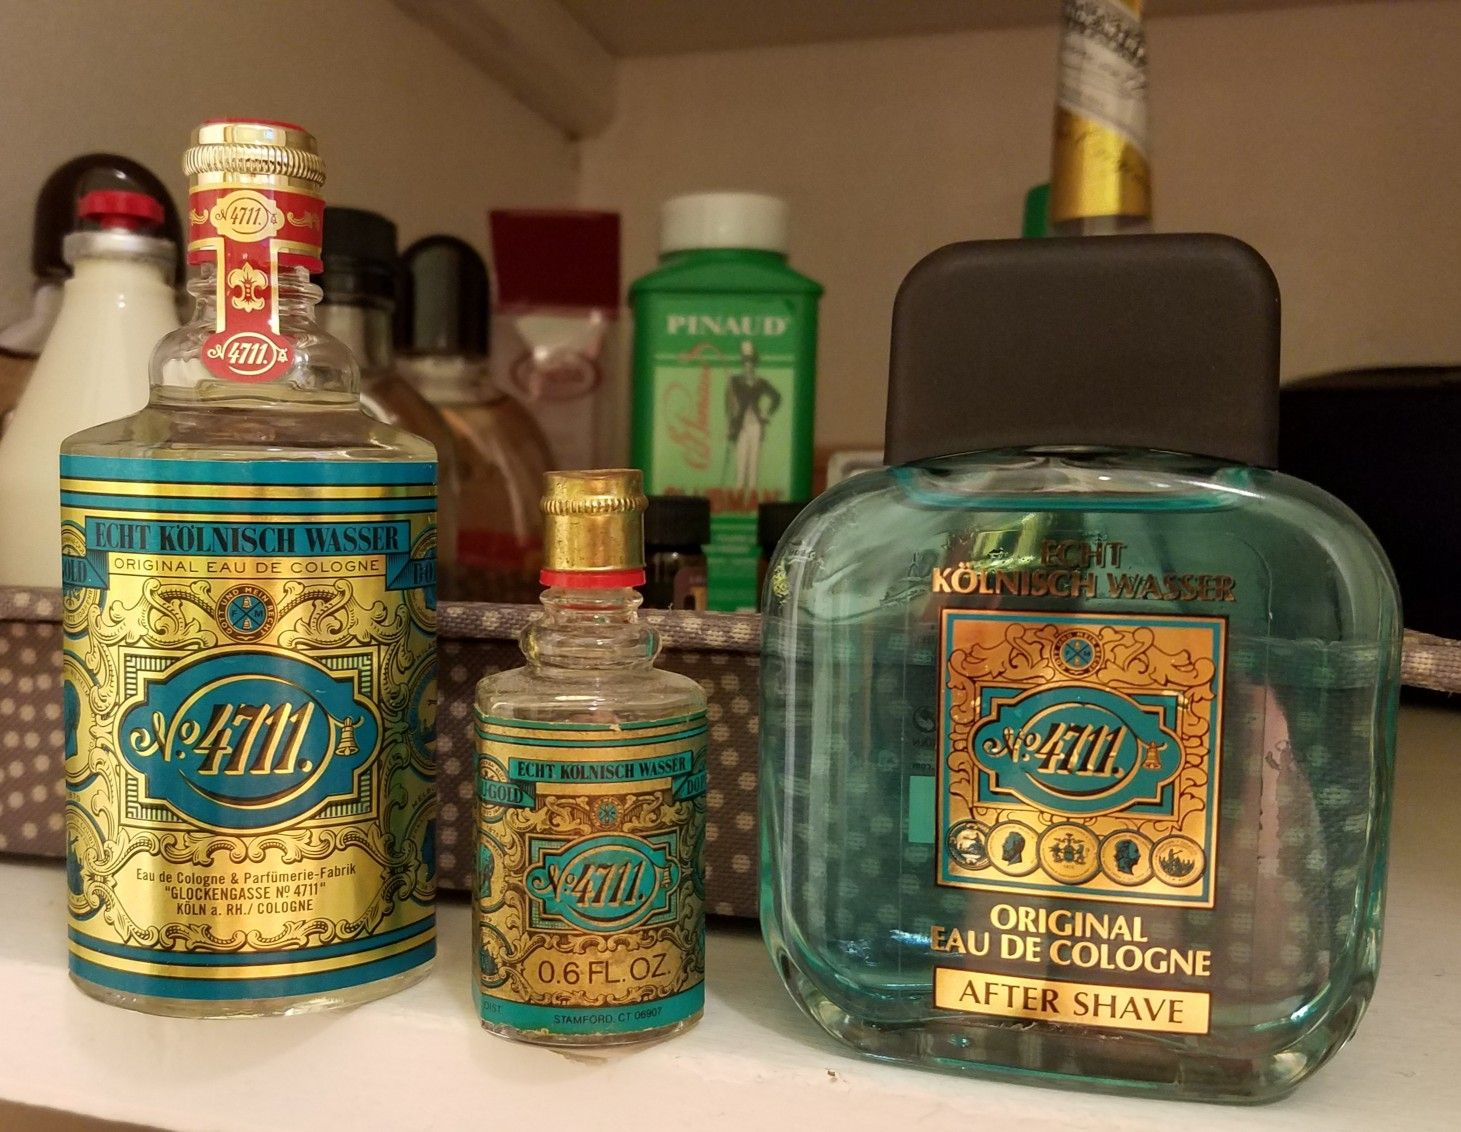 Whiskey Köln These Two Joined Their Little Brother 4711 Cologne And Aftershave